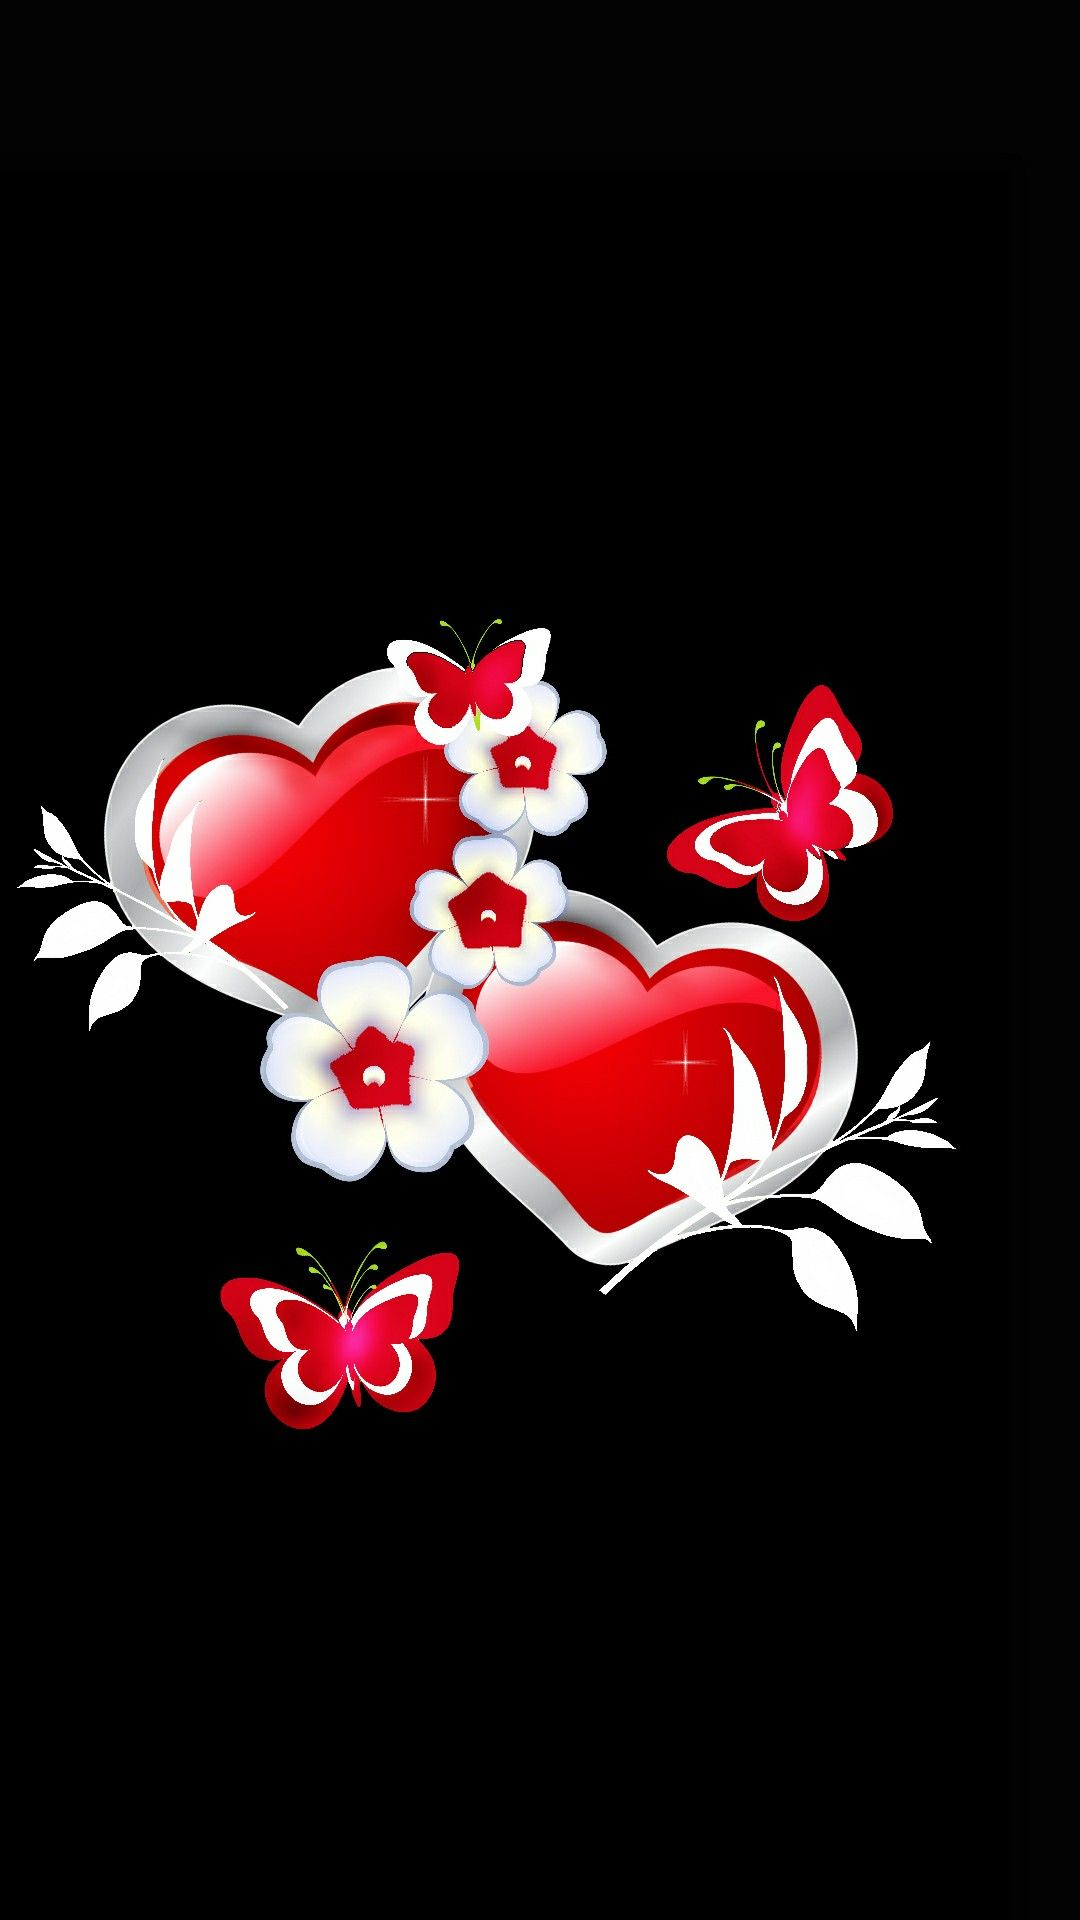 Red White Hearts Butterflies Heart Wallpaper Valentines Wallpaper Rose Flower Wallpaper